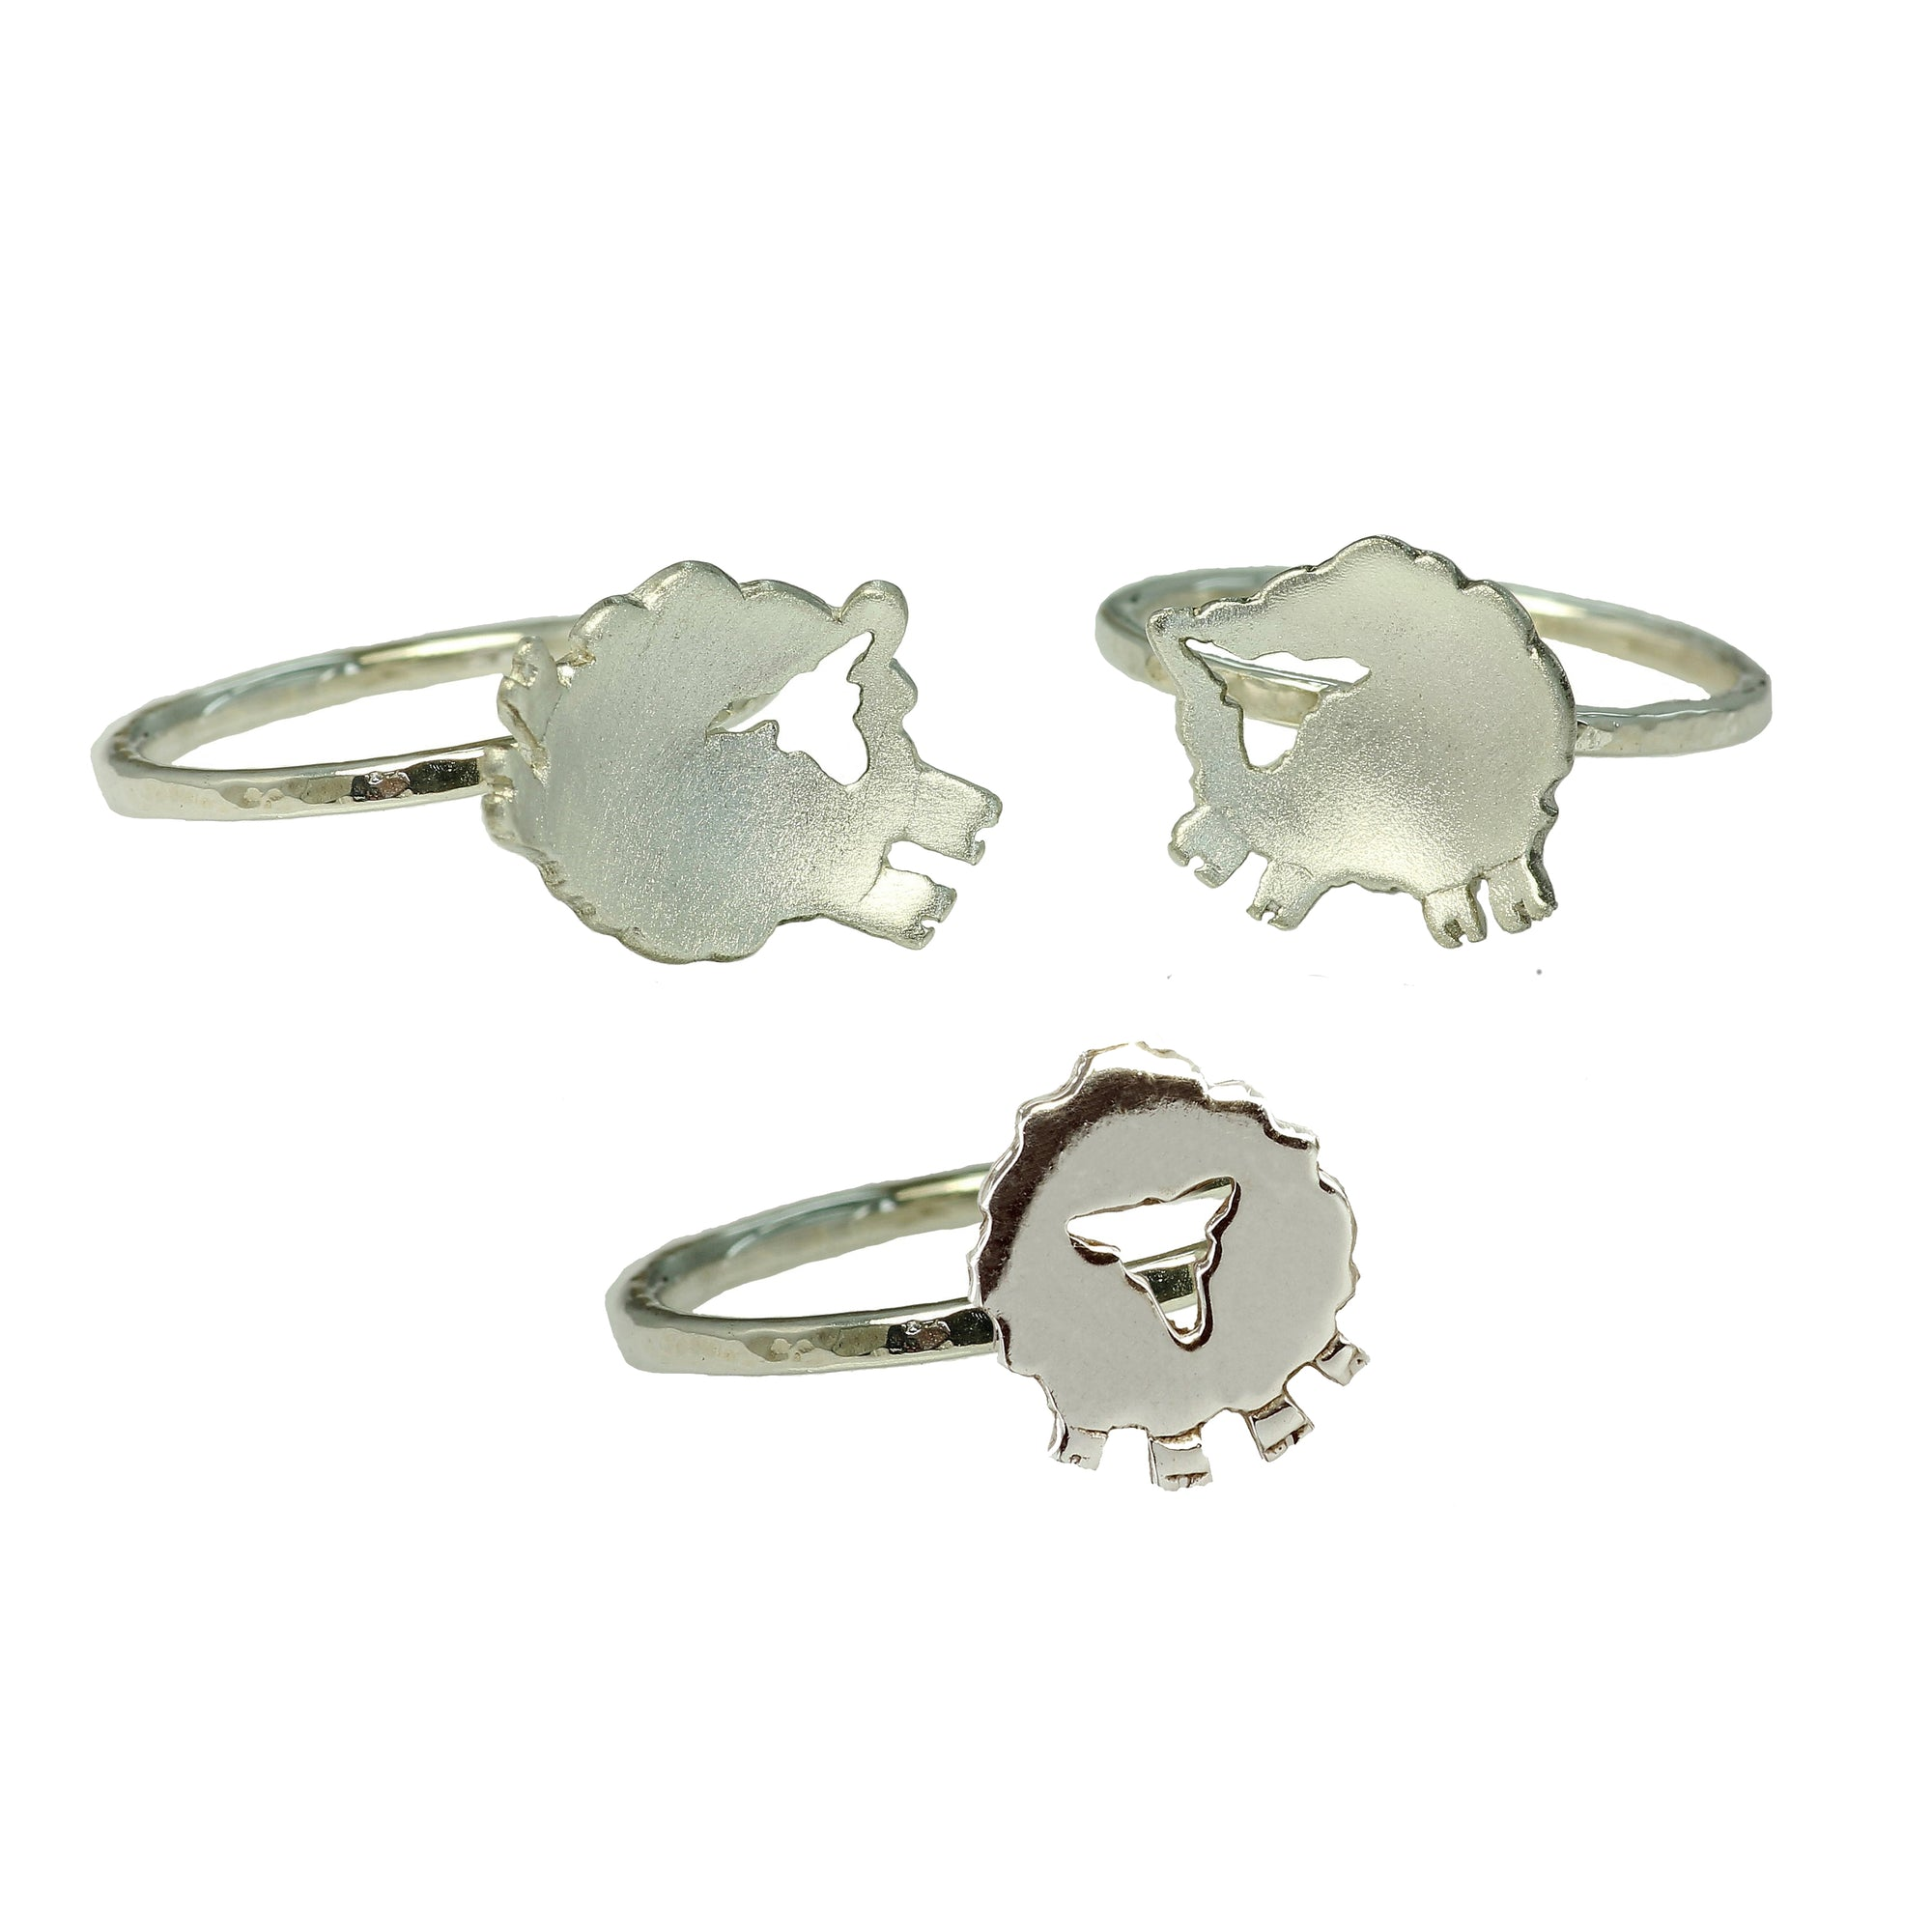 Three handcrafted Sterling Silver Irish Sheep Rings.